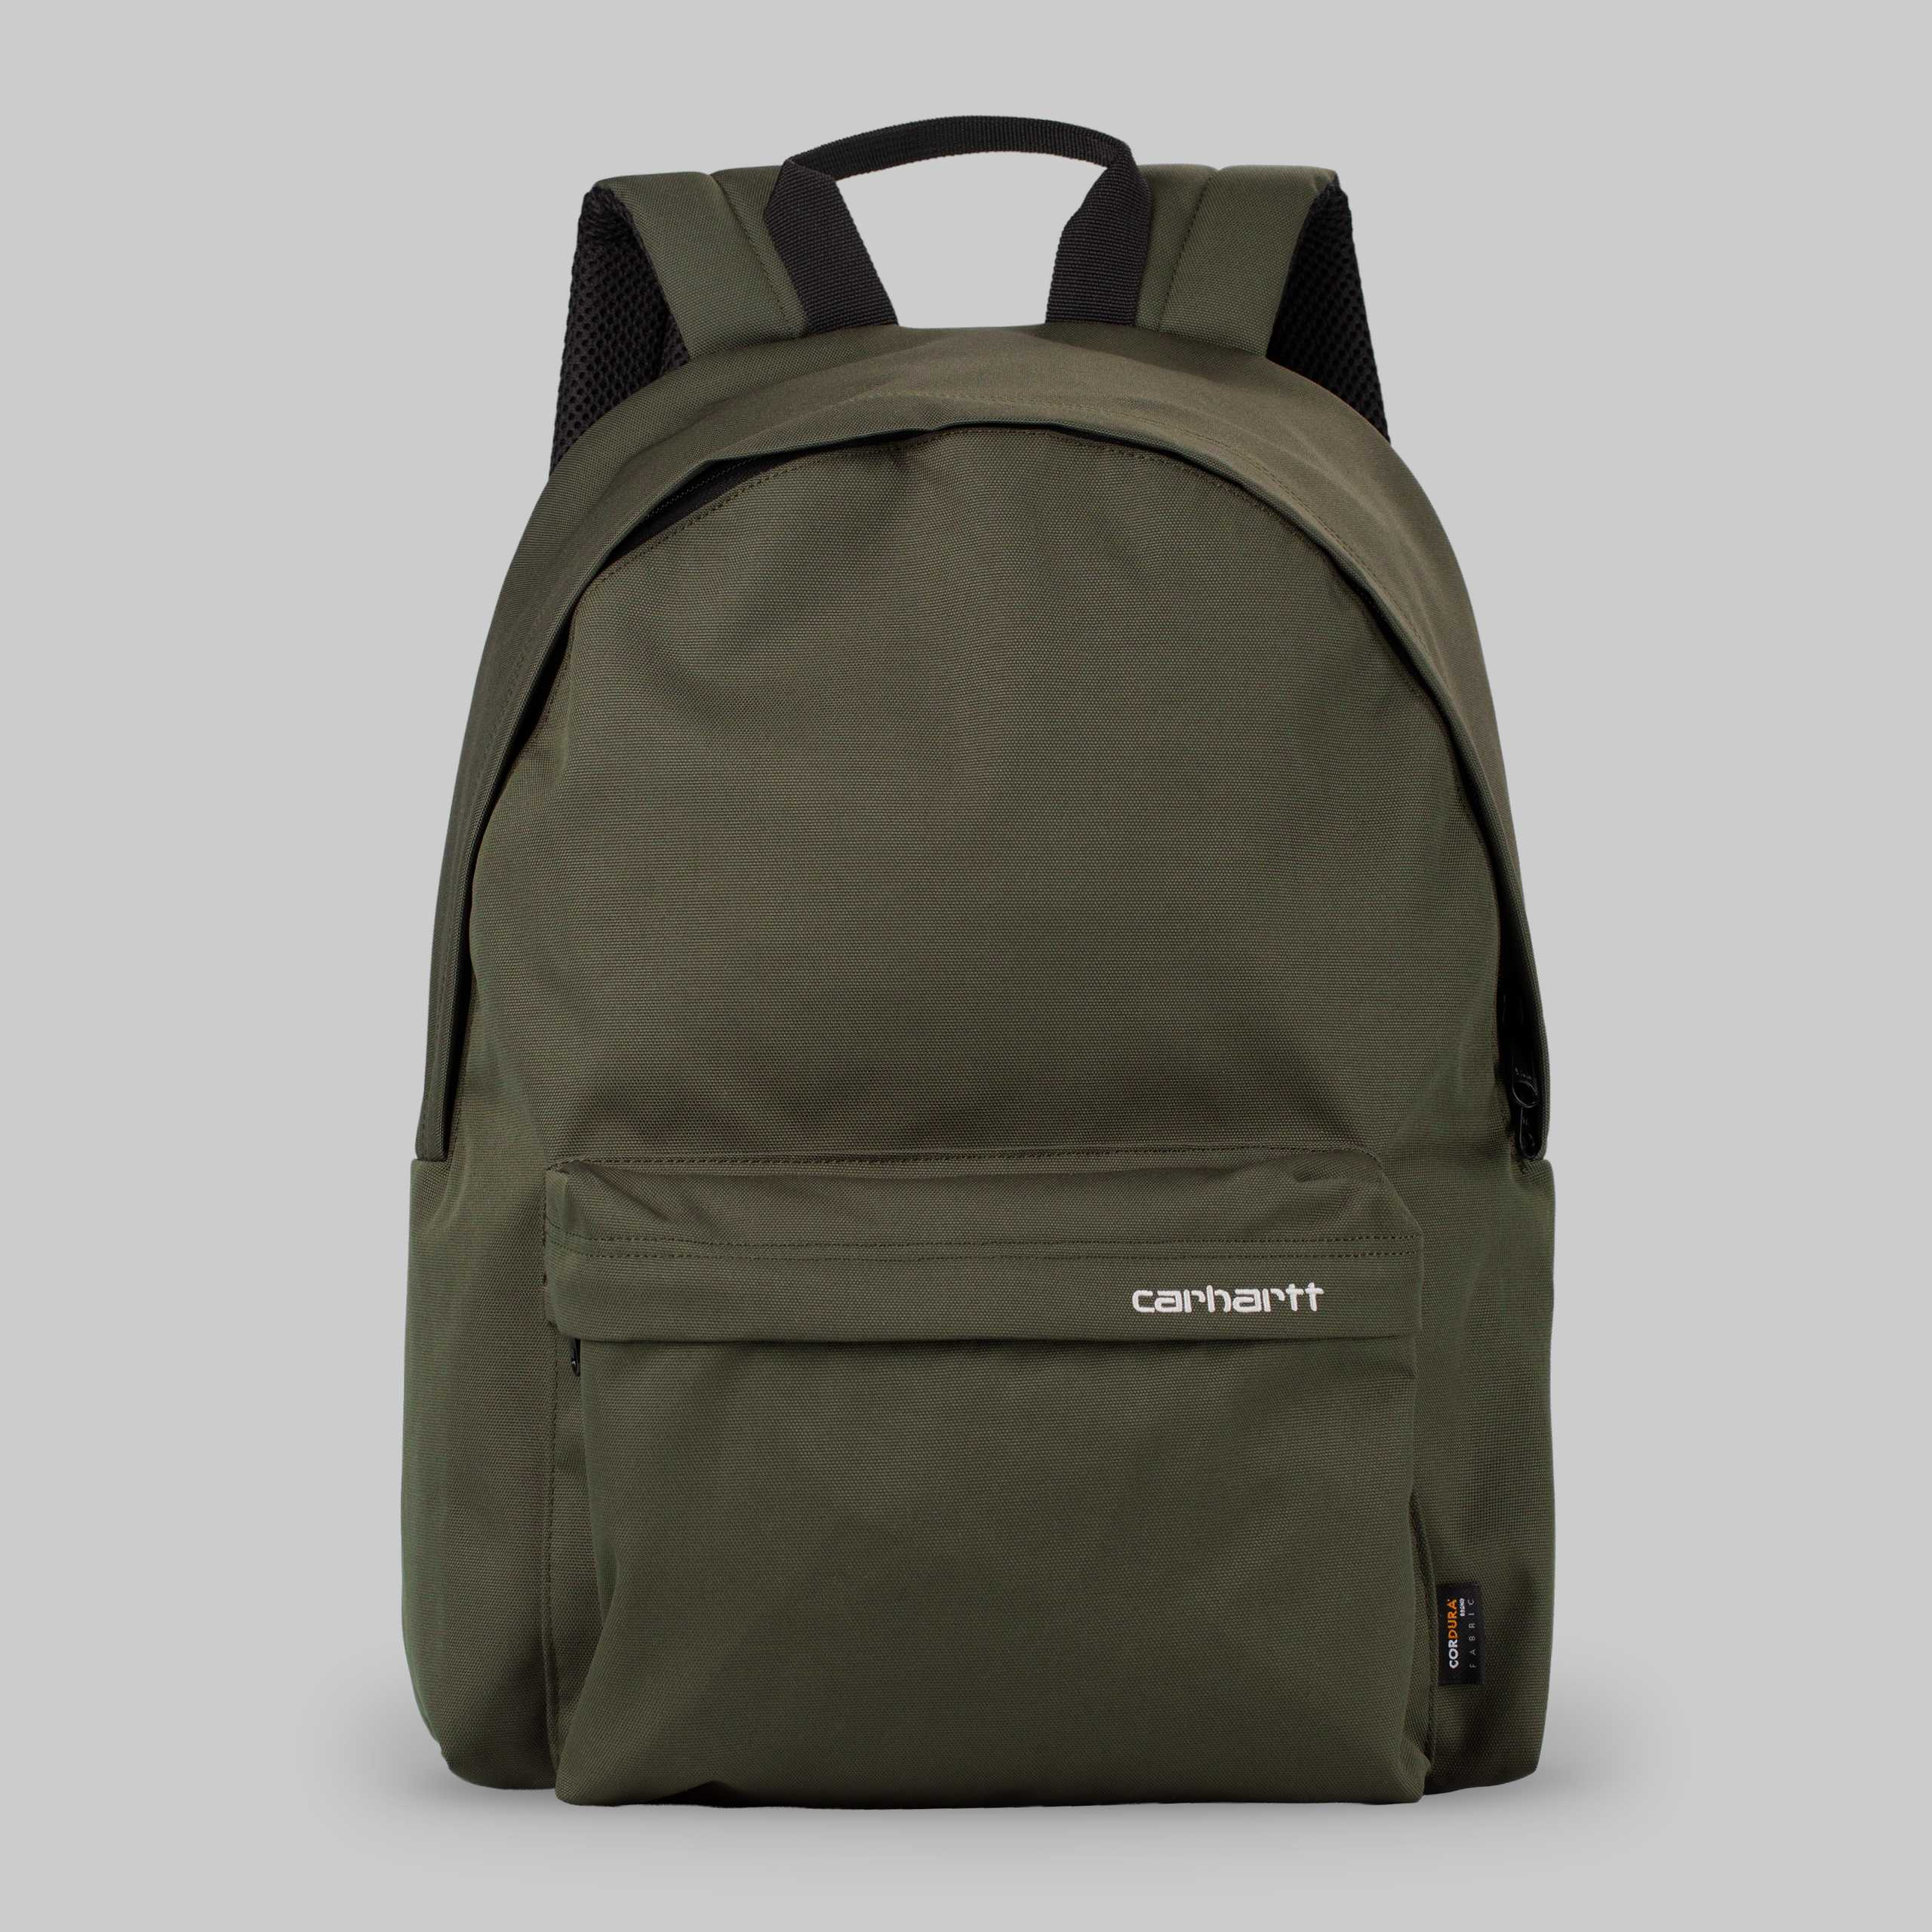 payton-backpack-cypress-white-1481